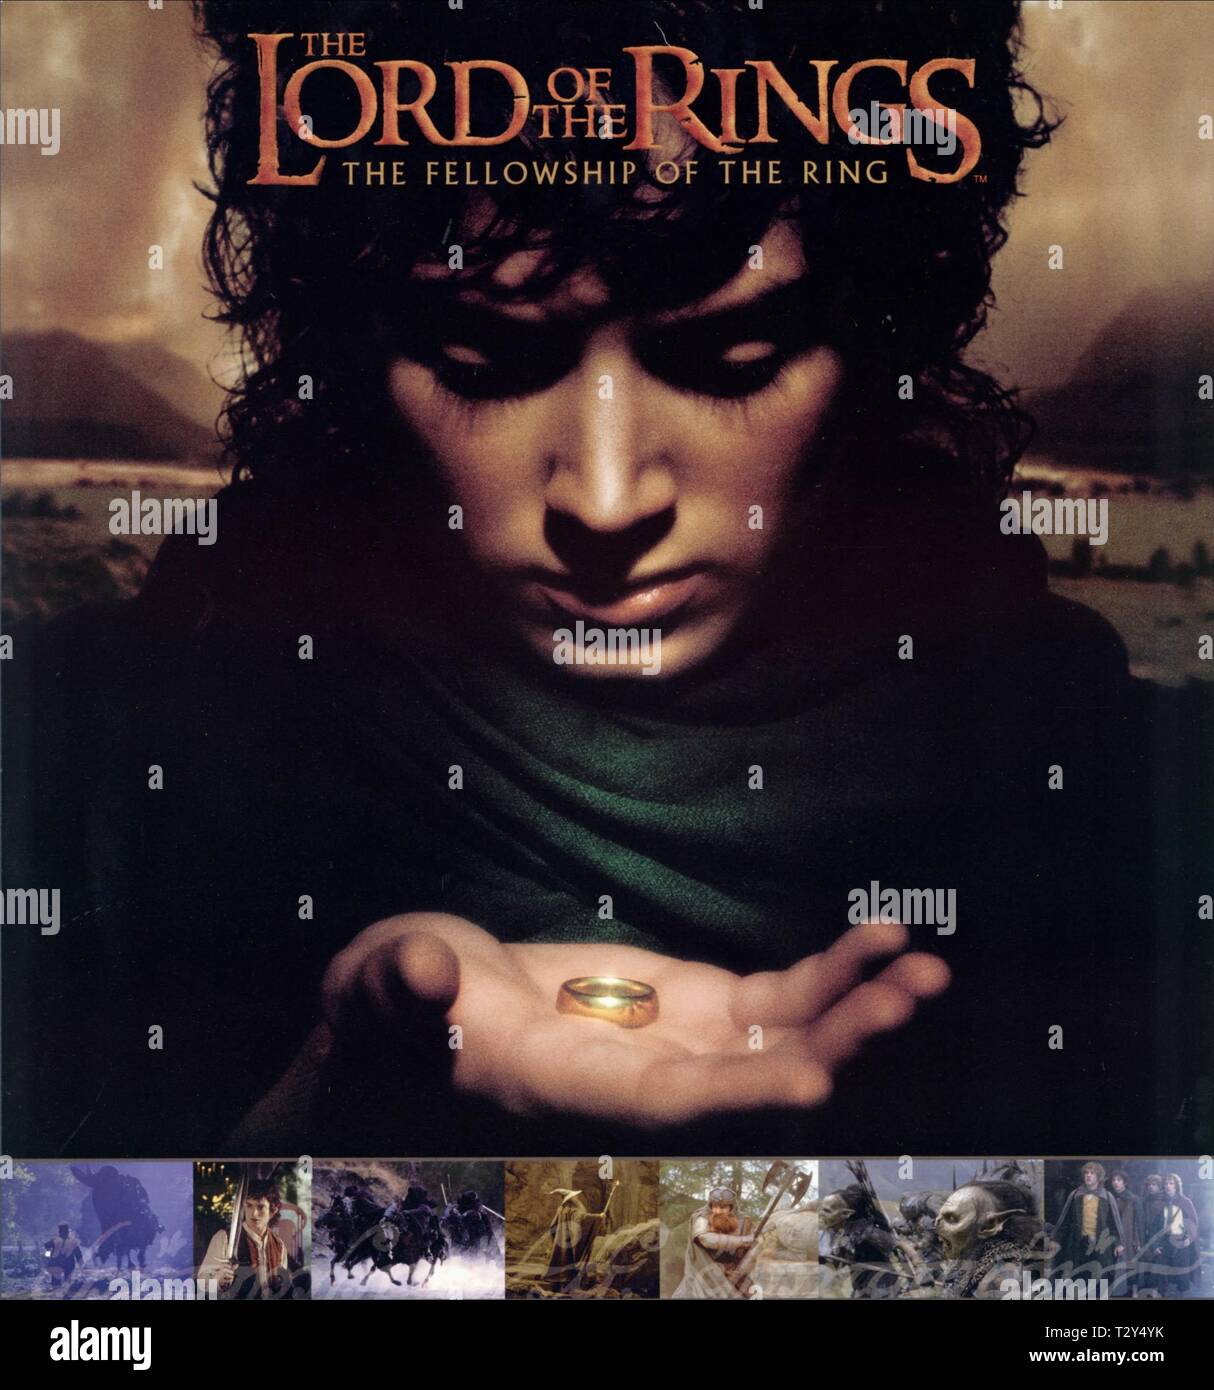 Elijah Wood Poster The Lord Of The Rings The Fellowship Of The Ring 2001 Stock Photo Alamy